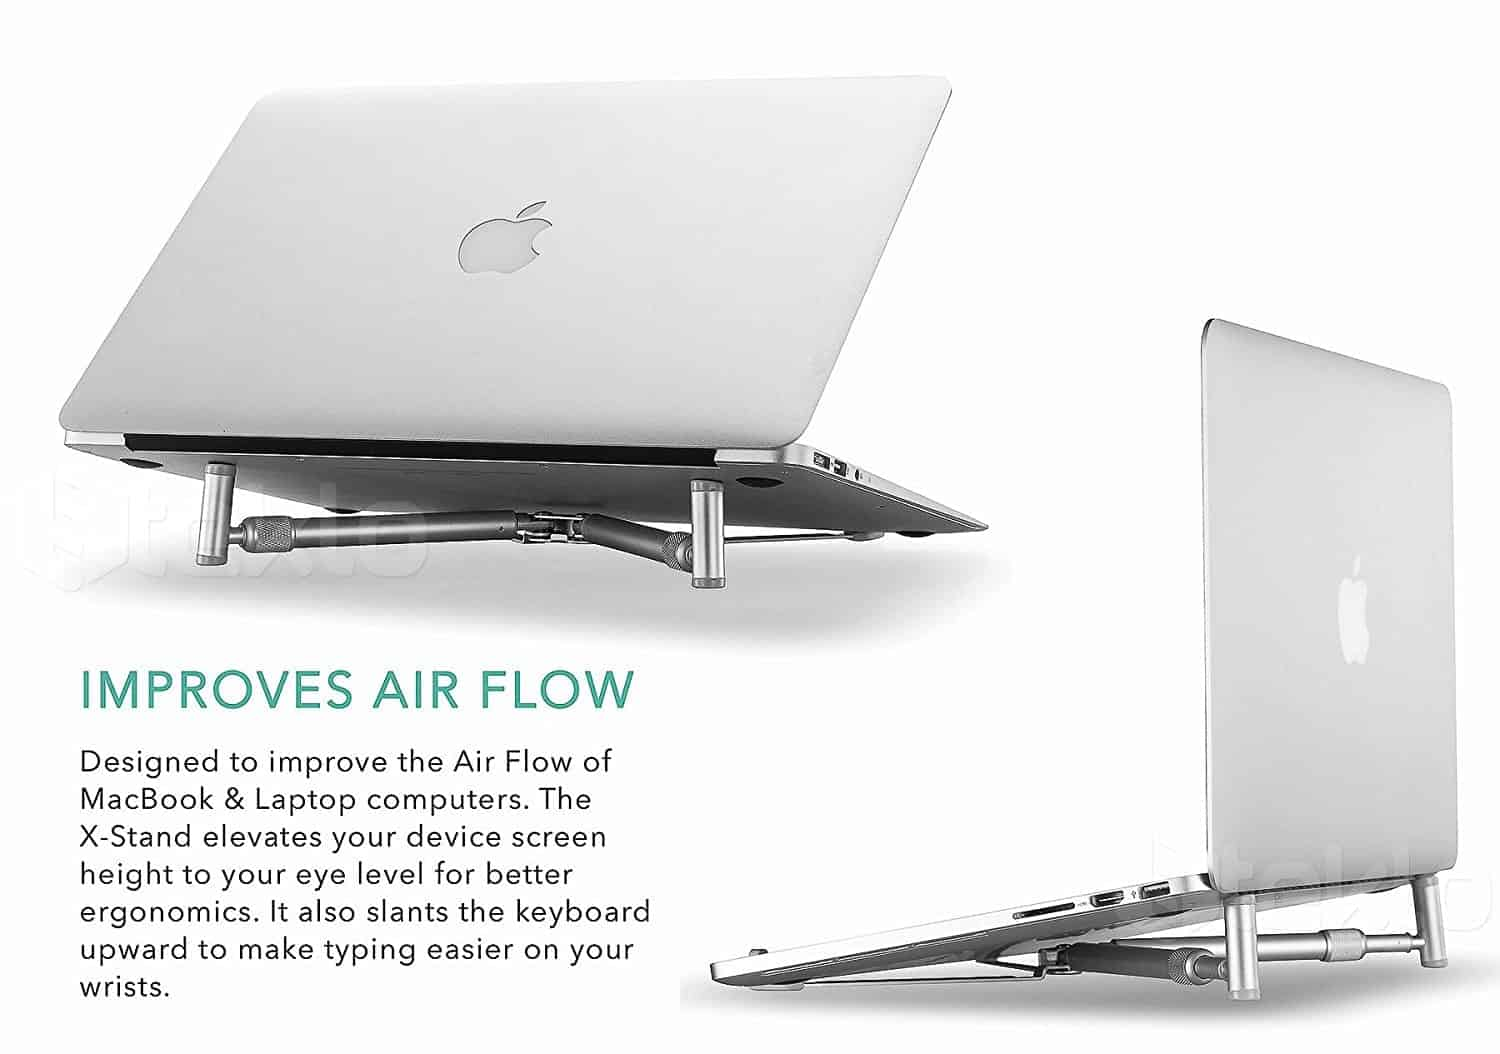 The Steklo X-Stand Improves Air Flow